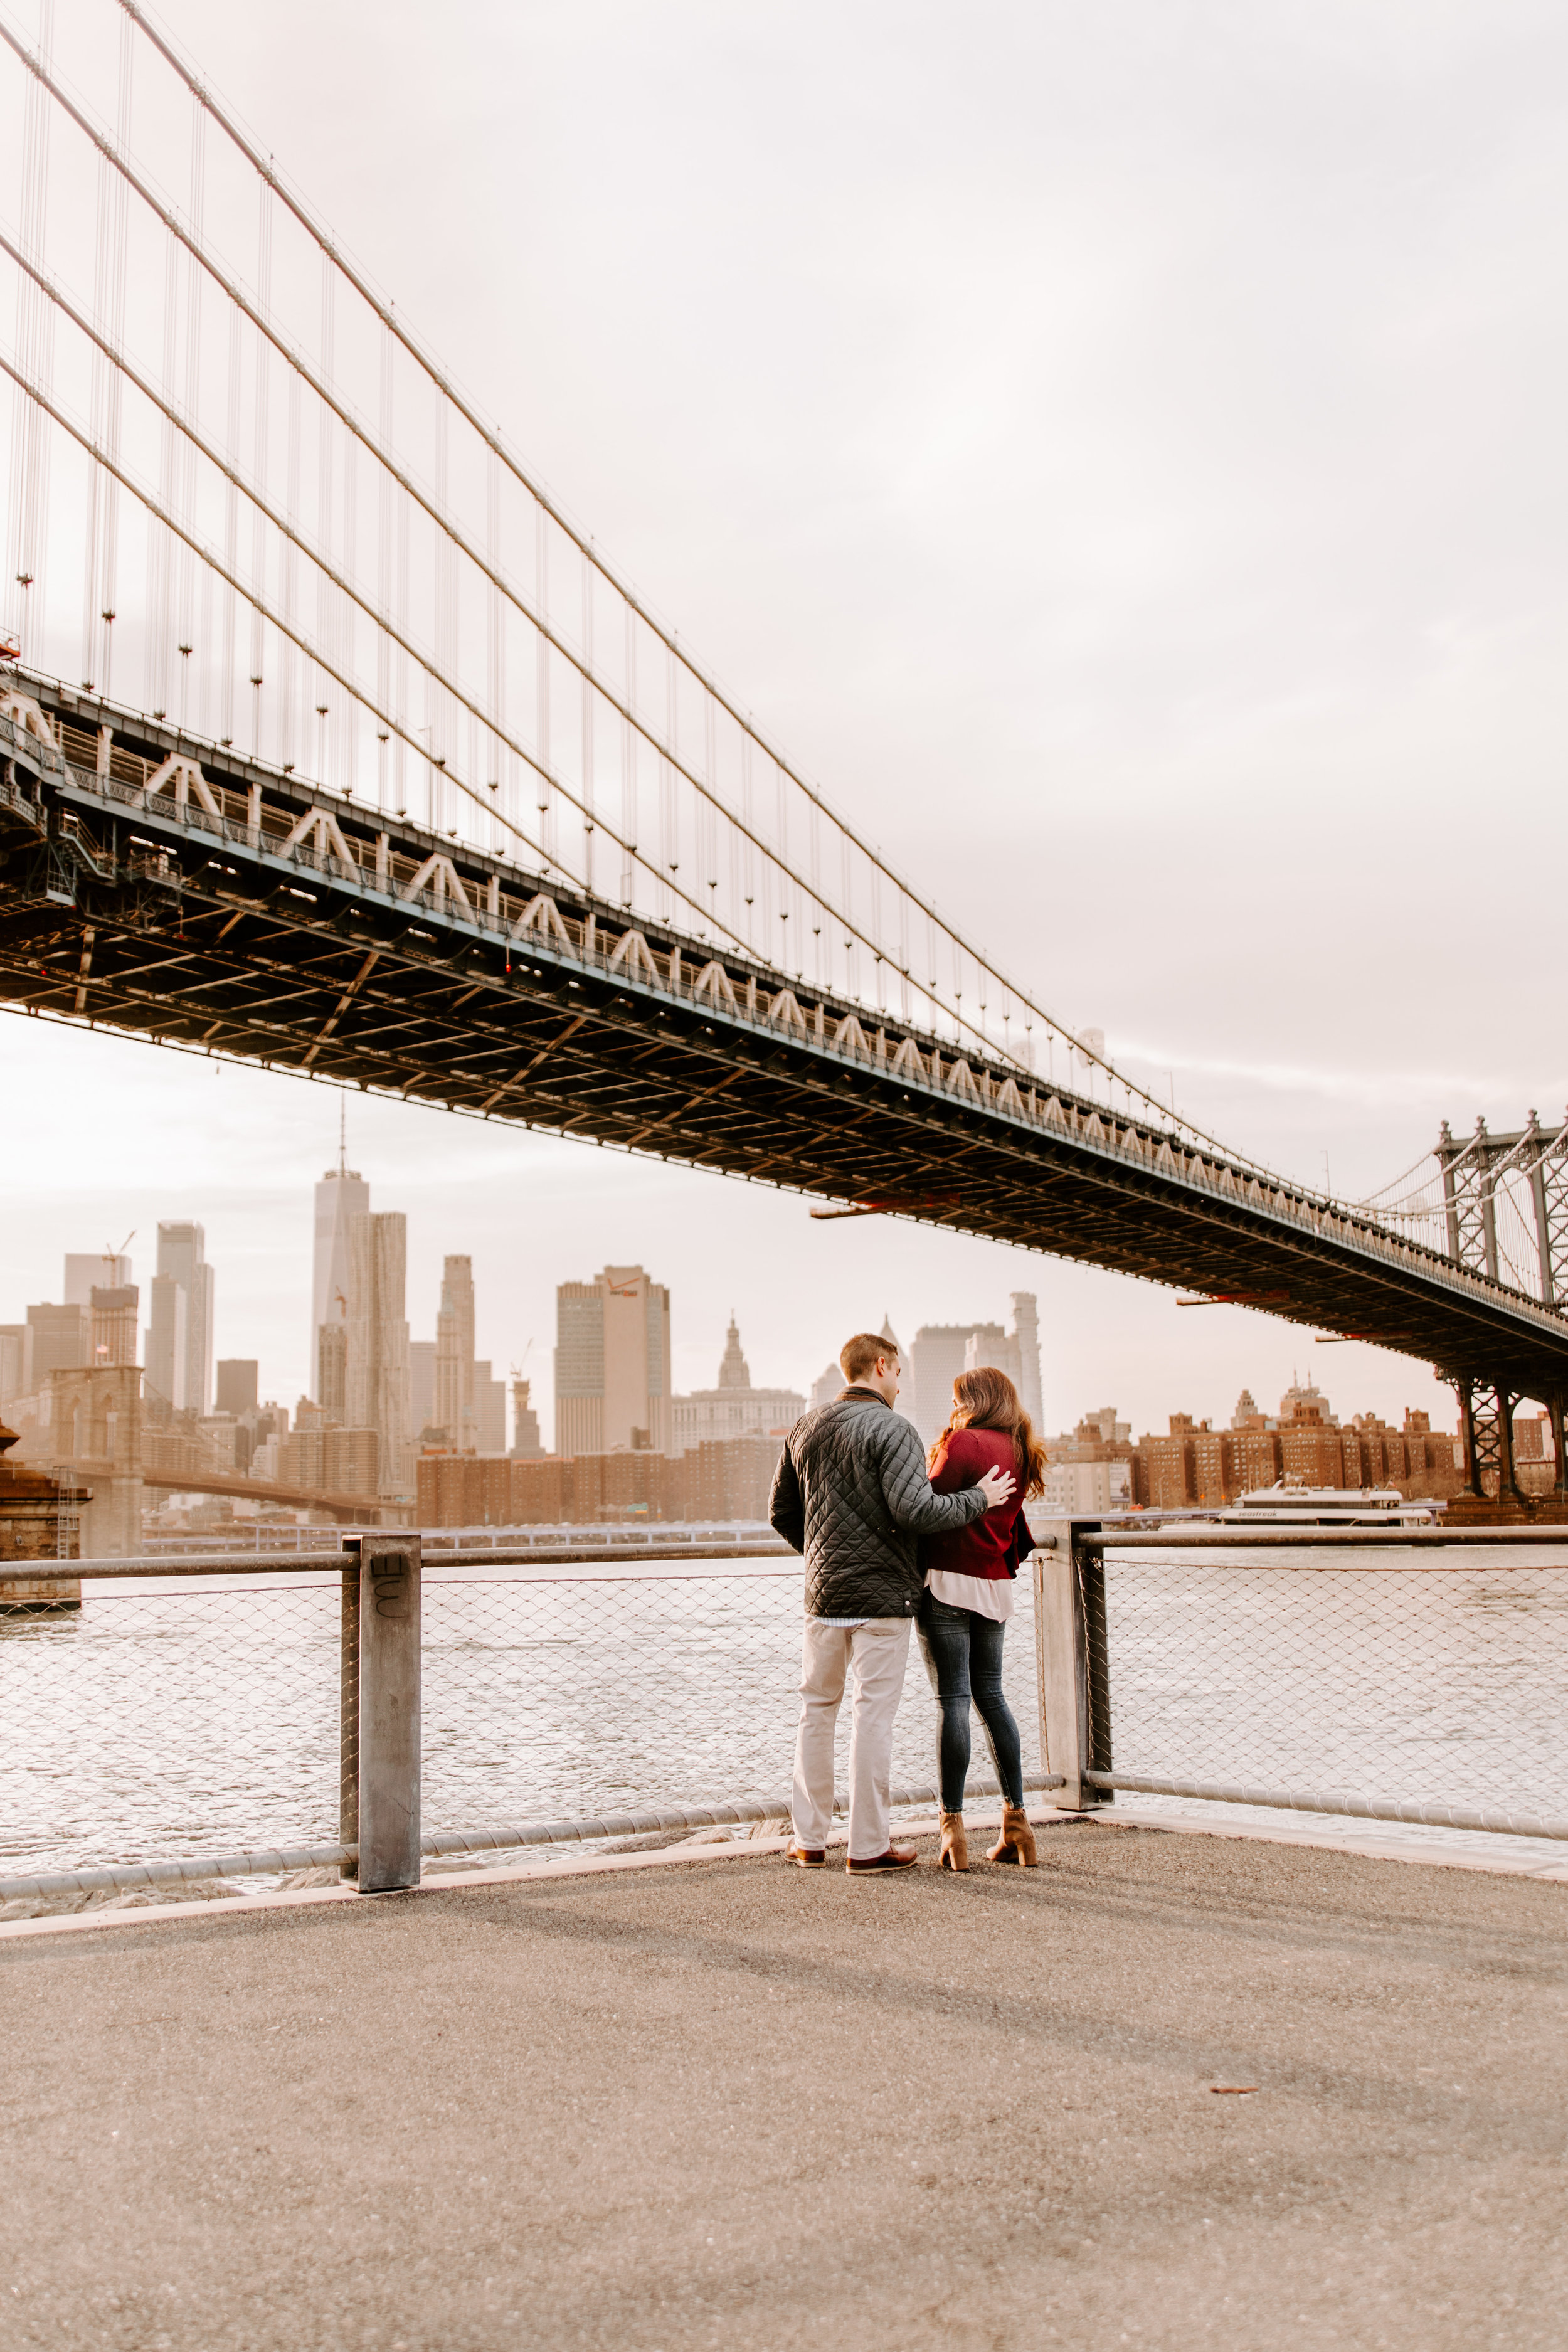 Brooklyn Bridge Proposal by Kara McCurdy